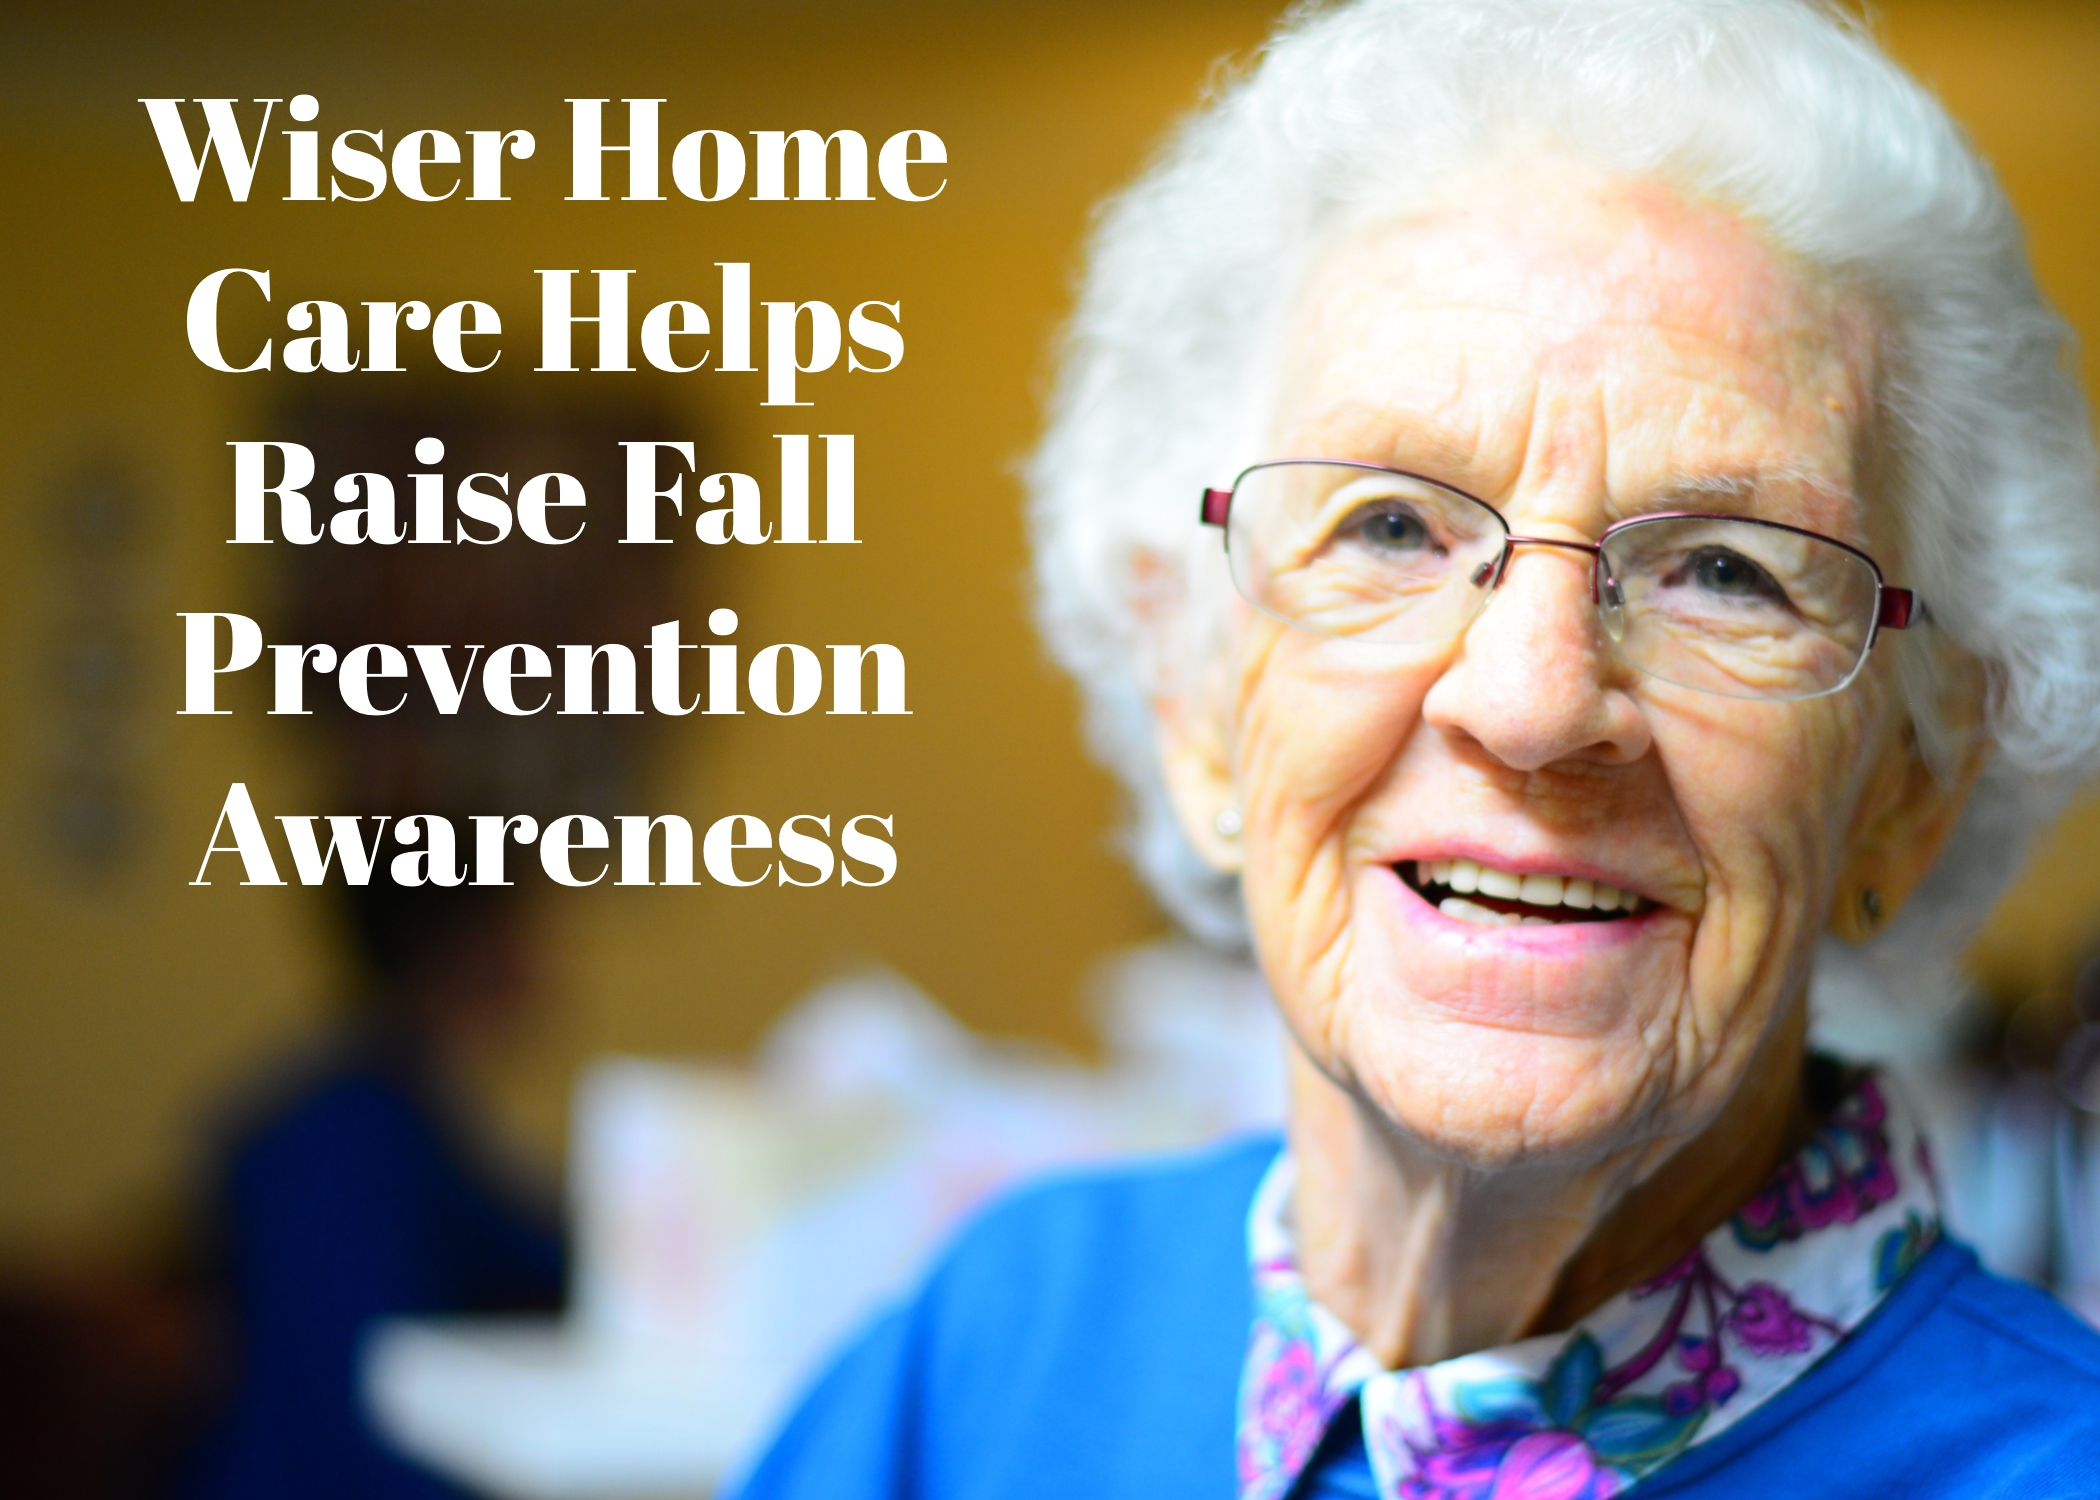 Wiser Home Care Helps Raise Fall Prevention Awareness